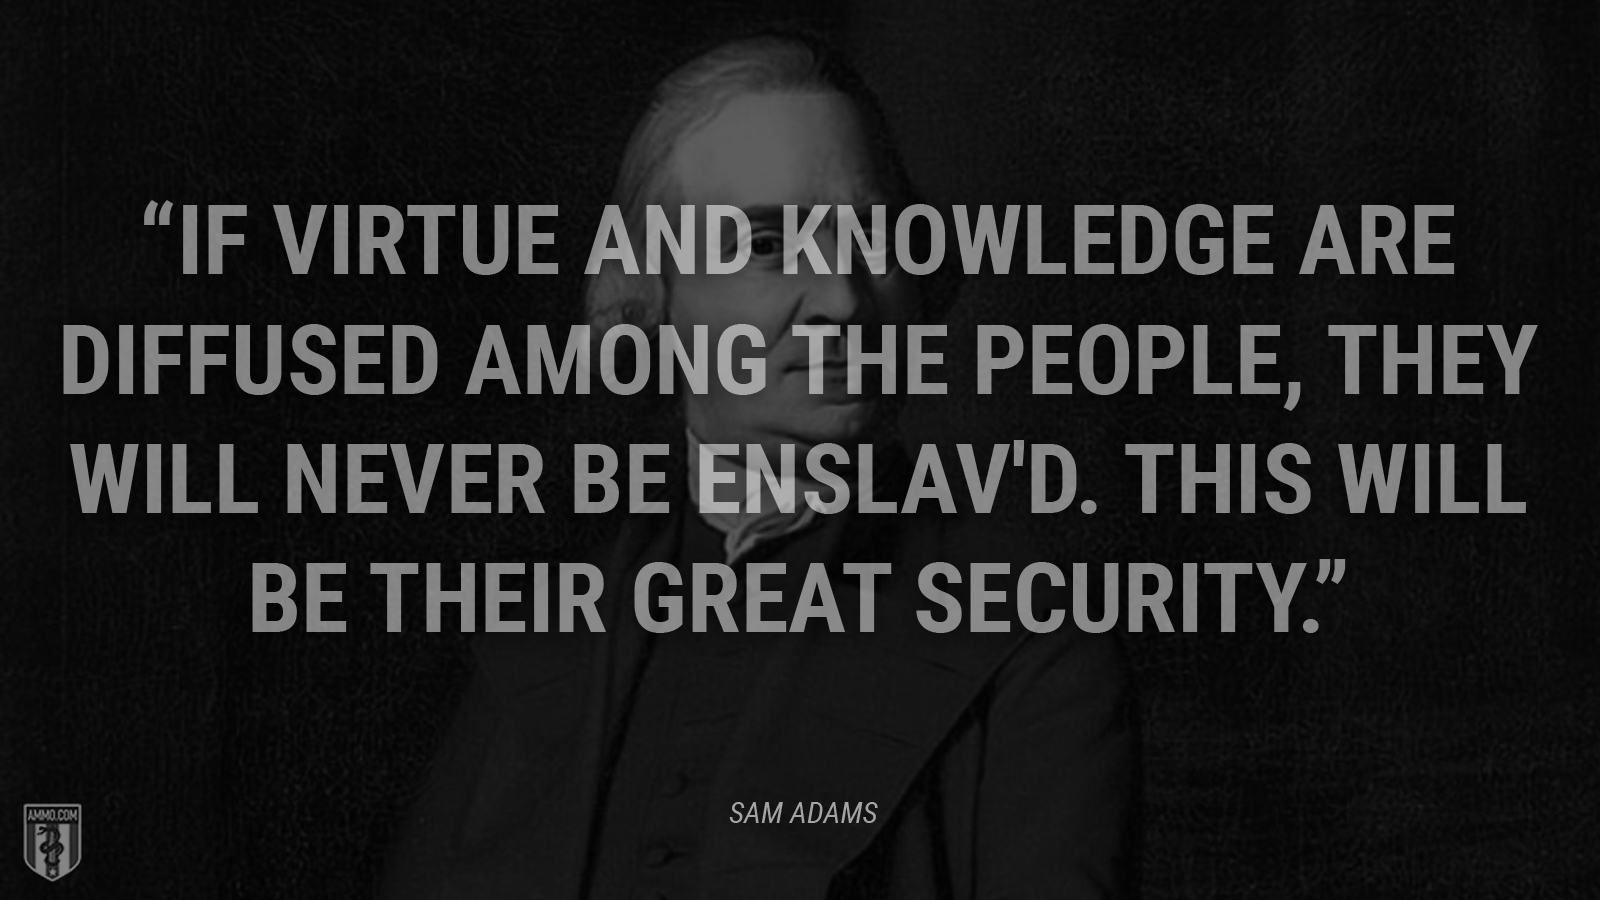 """If virtue and knowledge are diffused among the People, they will never be enslav'd. This will be their great Security."" - Sam Adams"